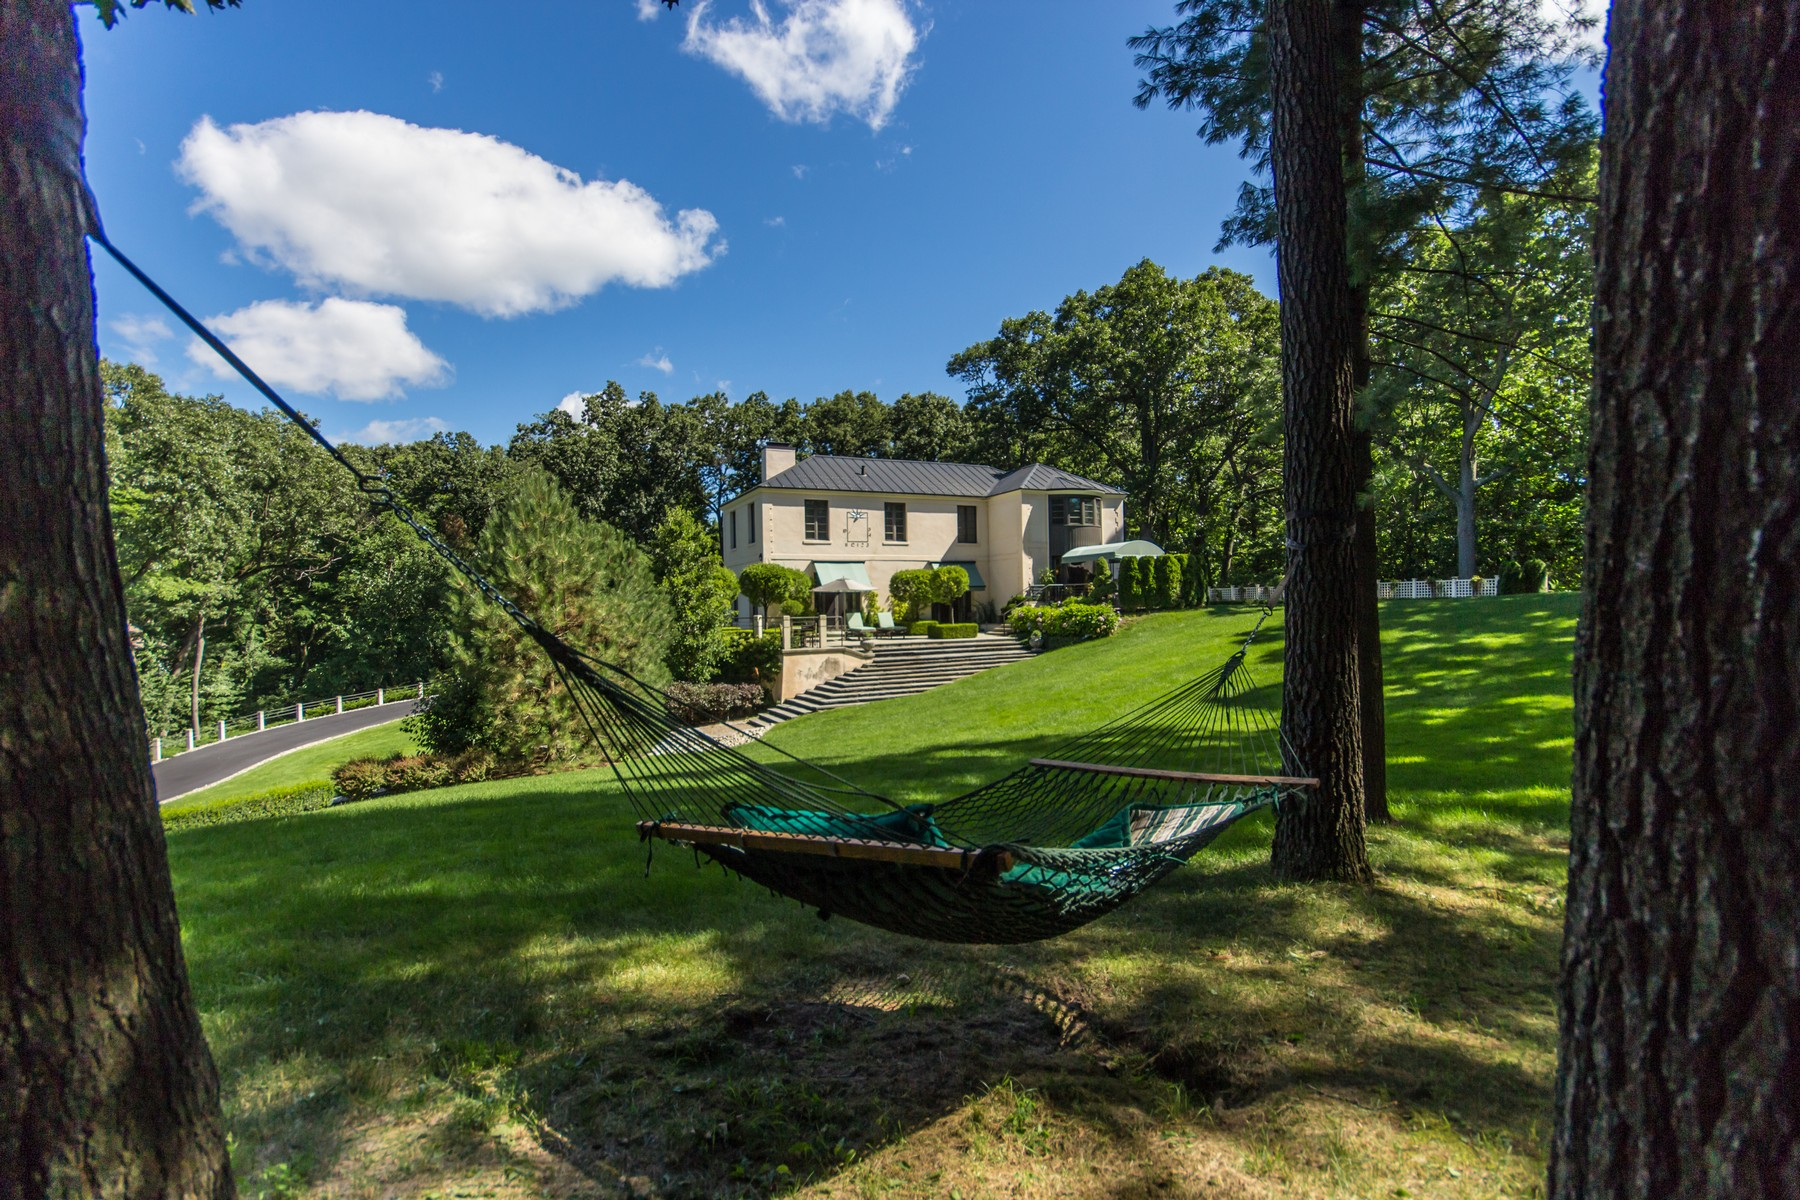 Other Residential for Sale at Peaceful and Private in the Heart of Old Loudonville 36 Hills Road Loudonville, New York 12211 United States